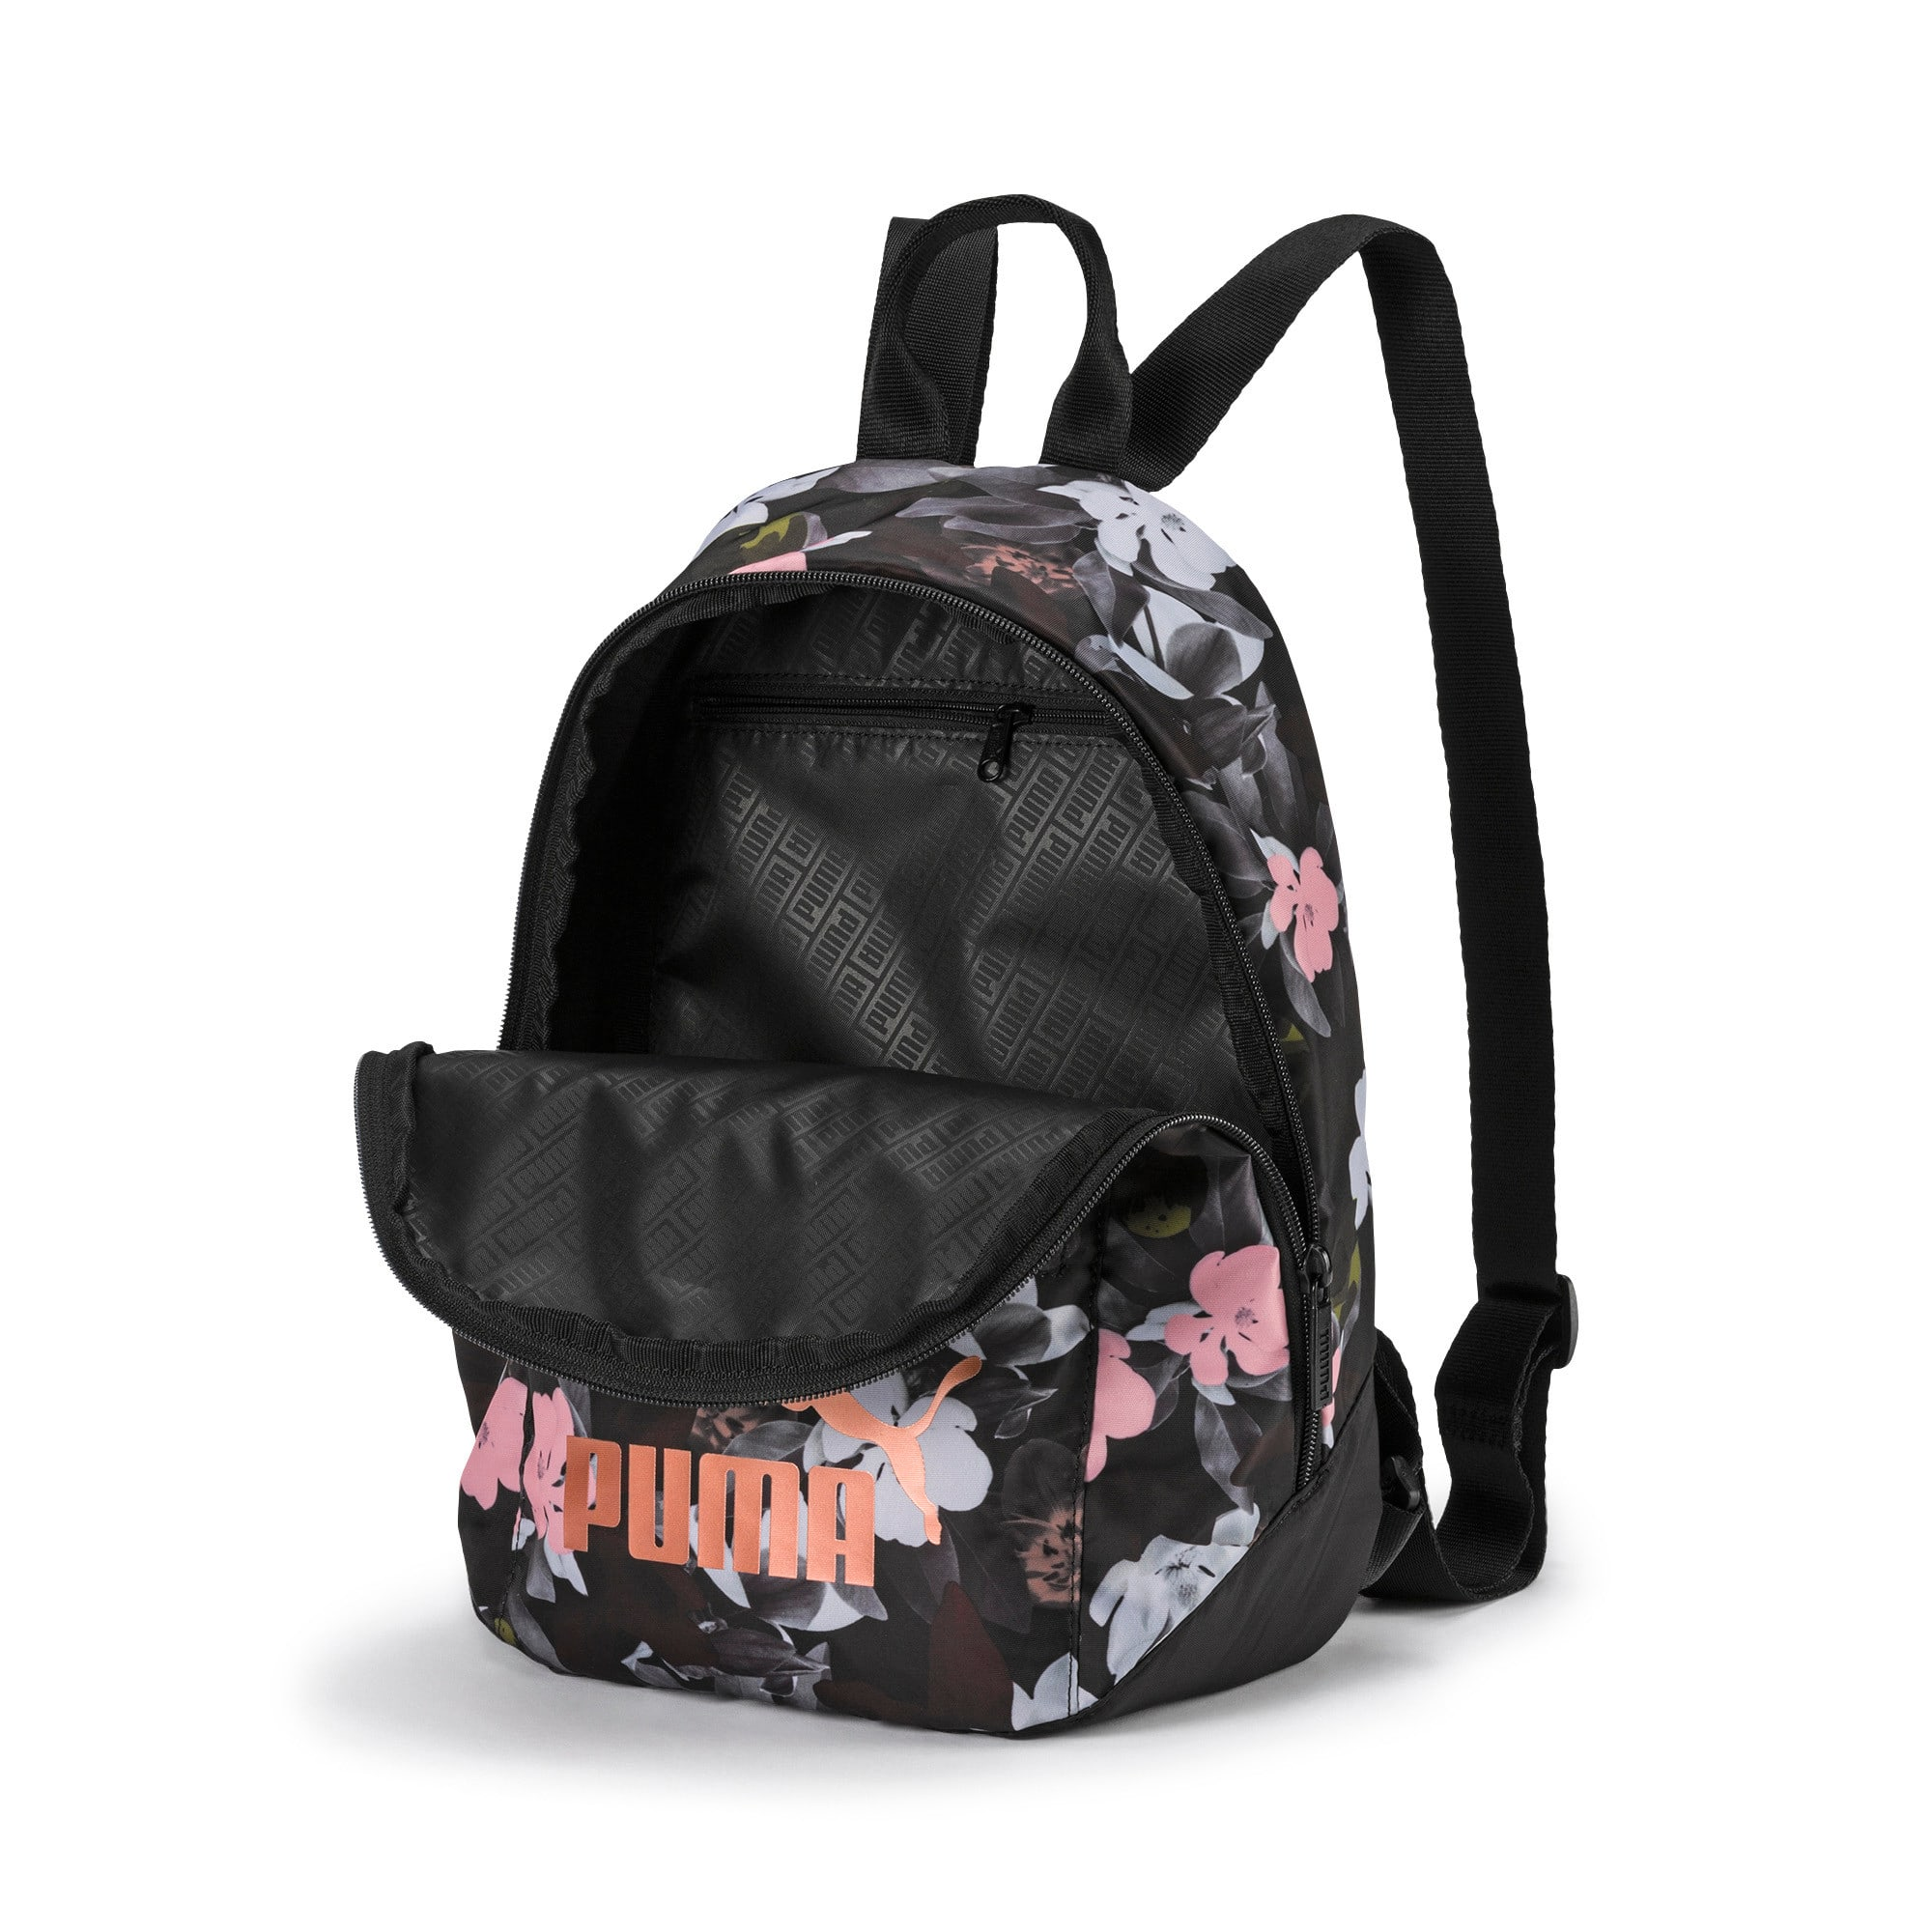 Thumbnail 4 of Archive Women's Backpack, Puma Black-Floral AOP, medium-IND